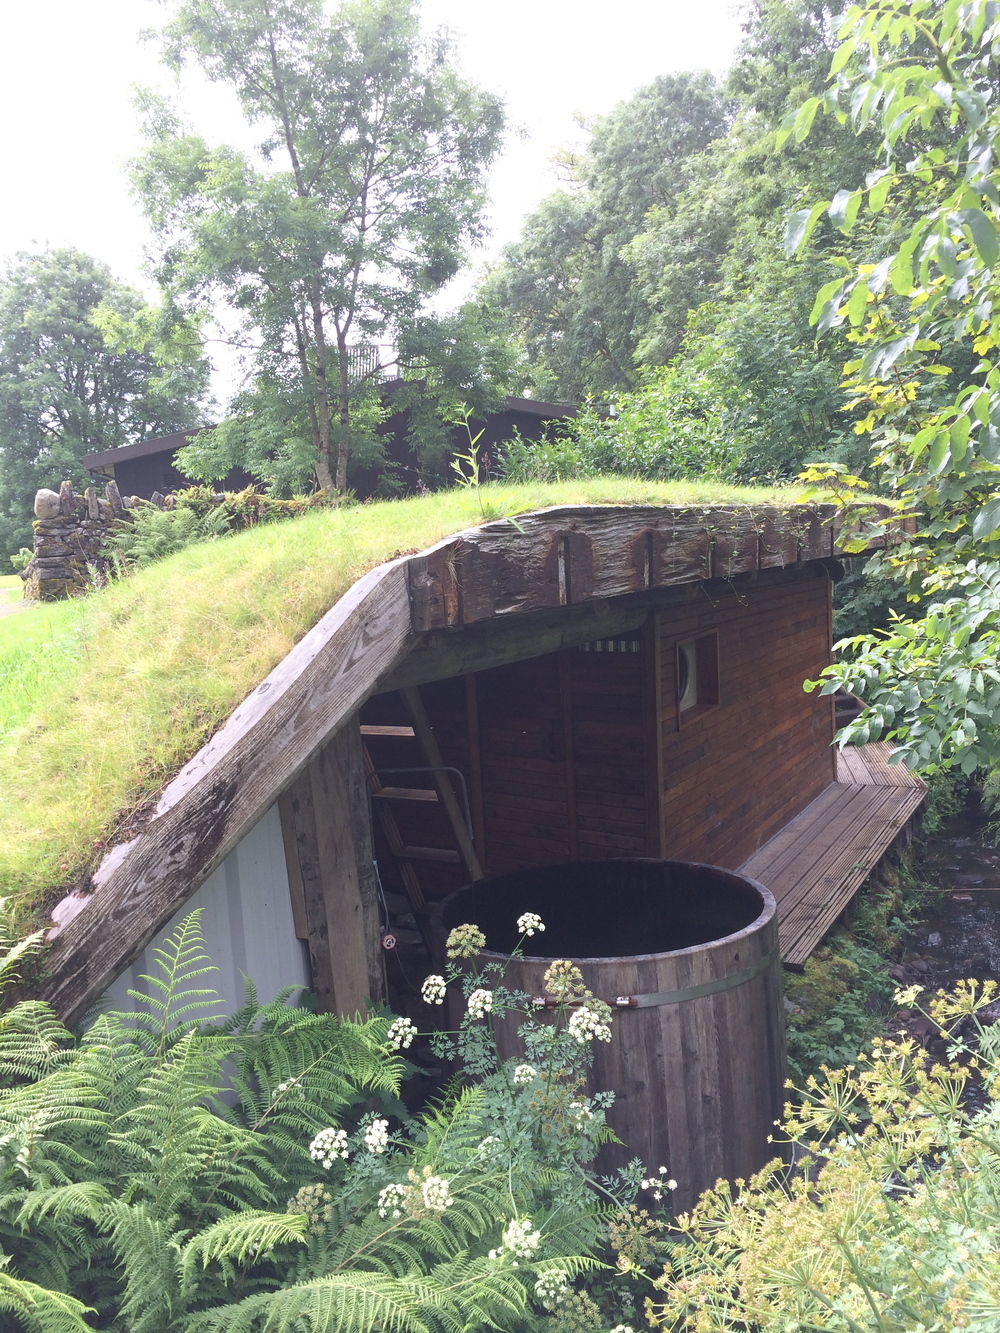 The underground sauna at the retreat center I stayed at in EcoYoga in Kilmartin, my own personal ritual pleasure space.